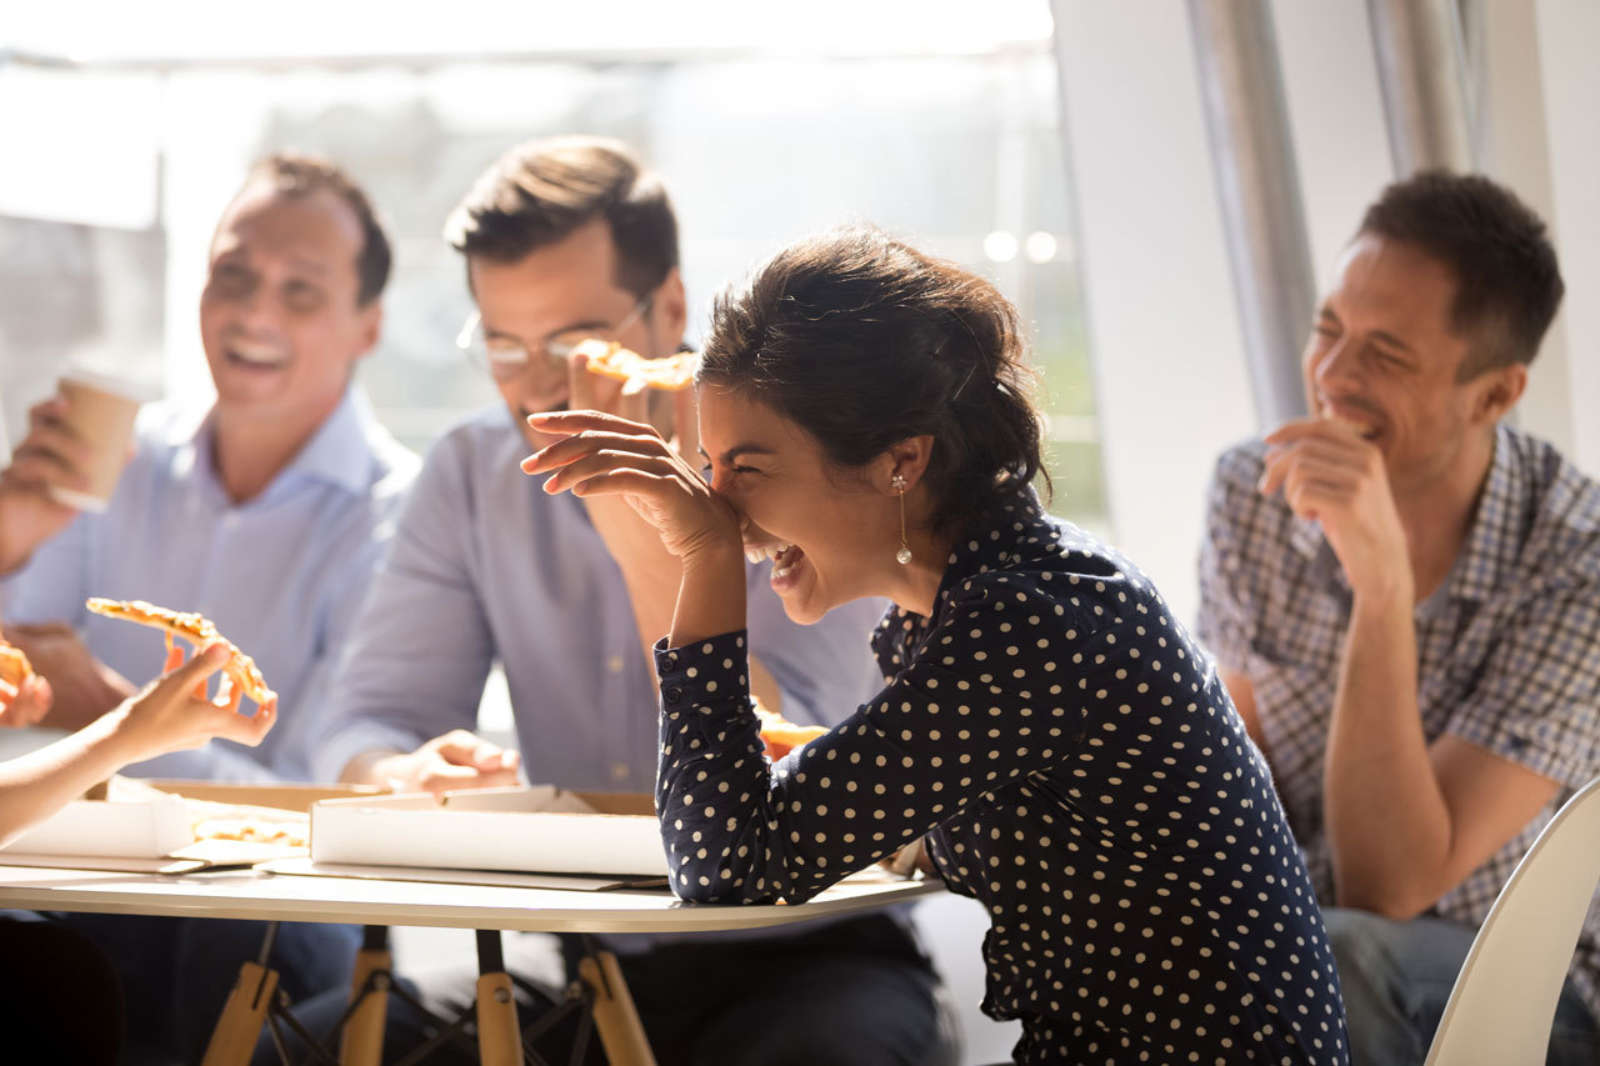 Laughing colleagues eating pizza group meeting work office setting